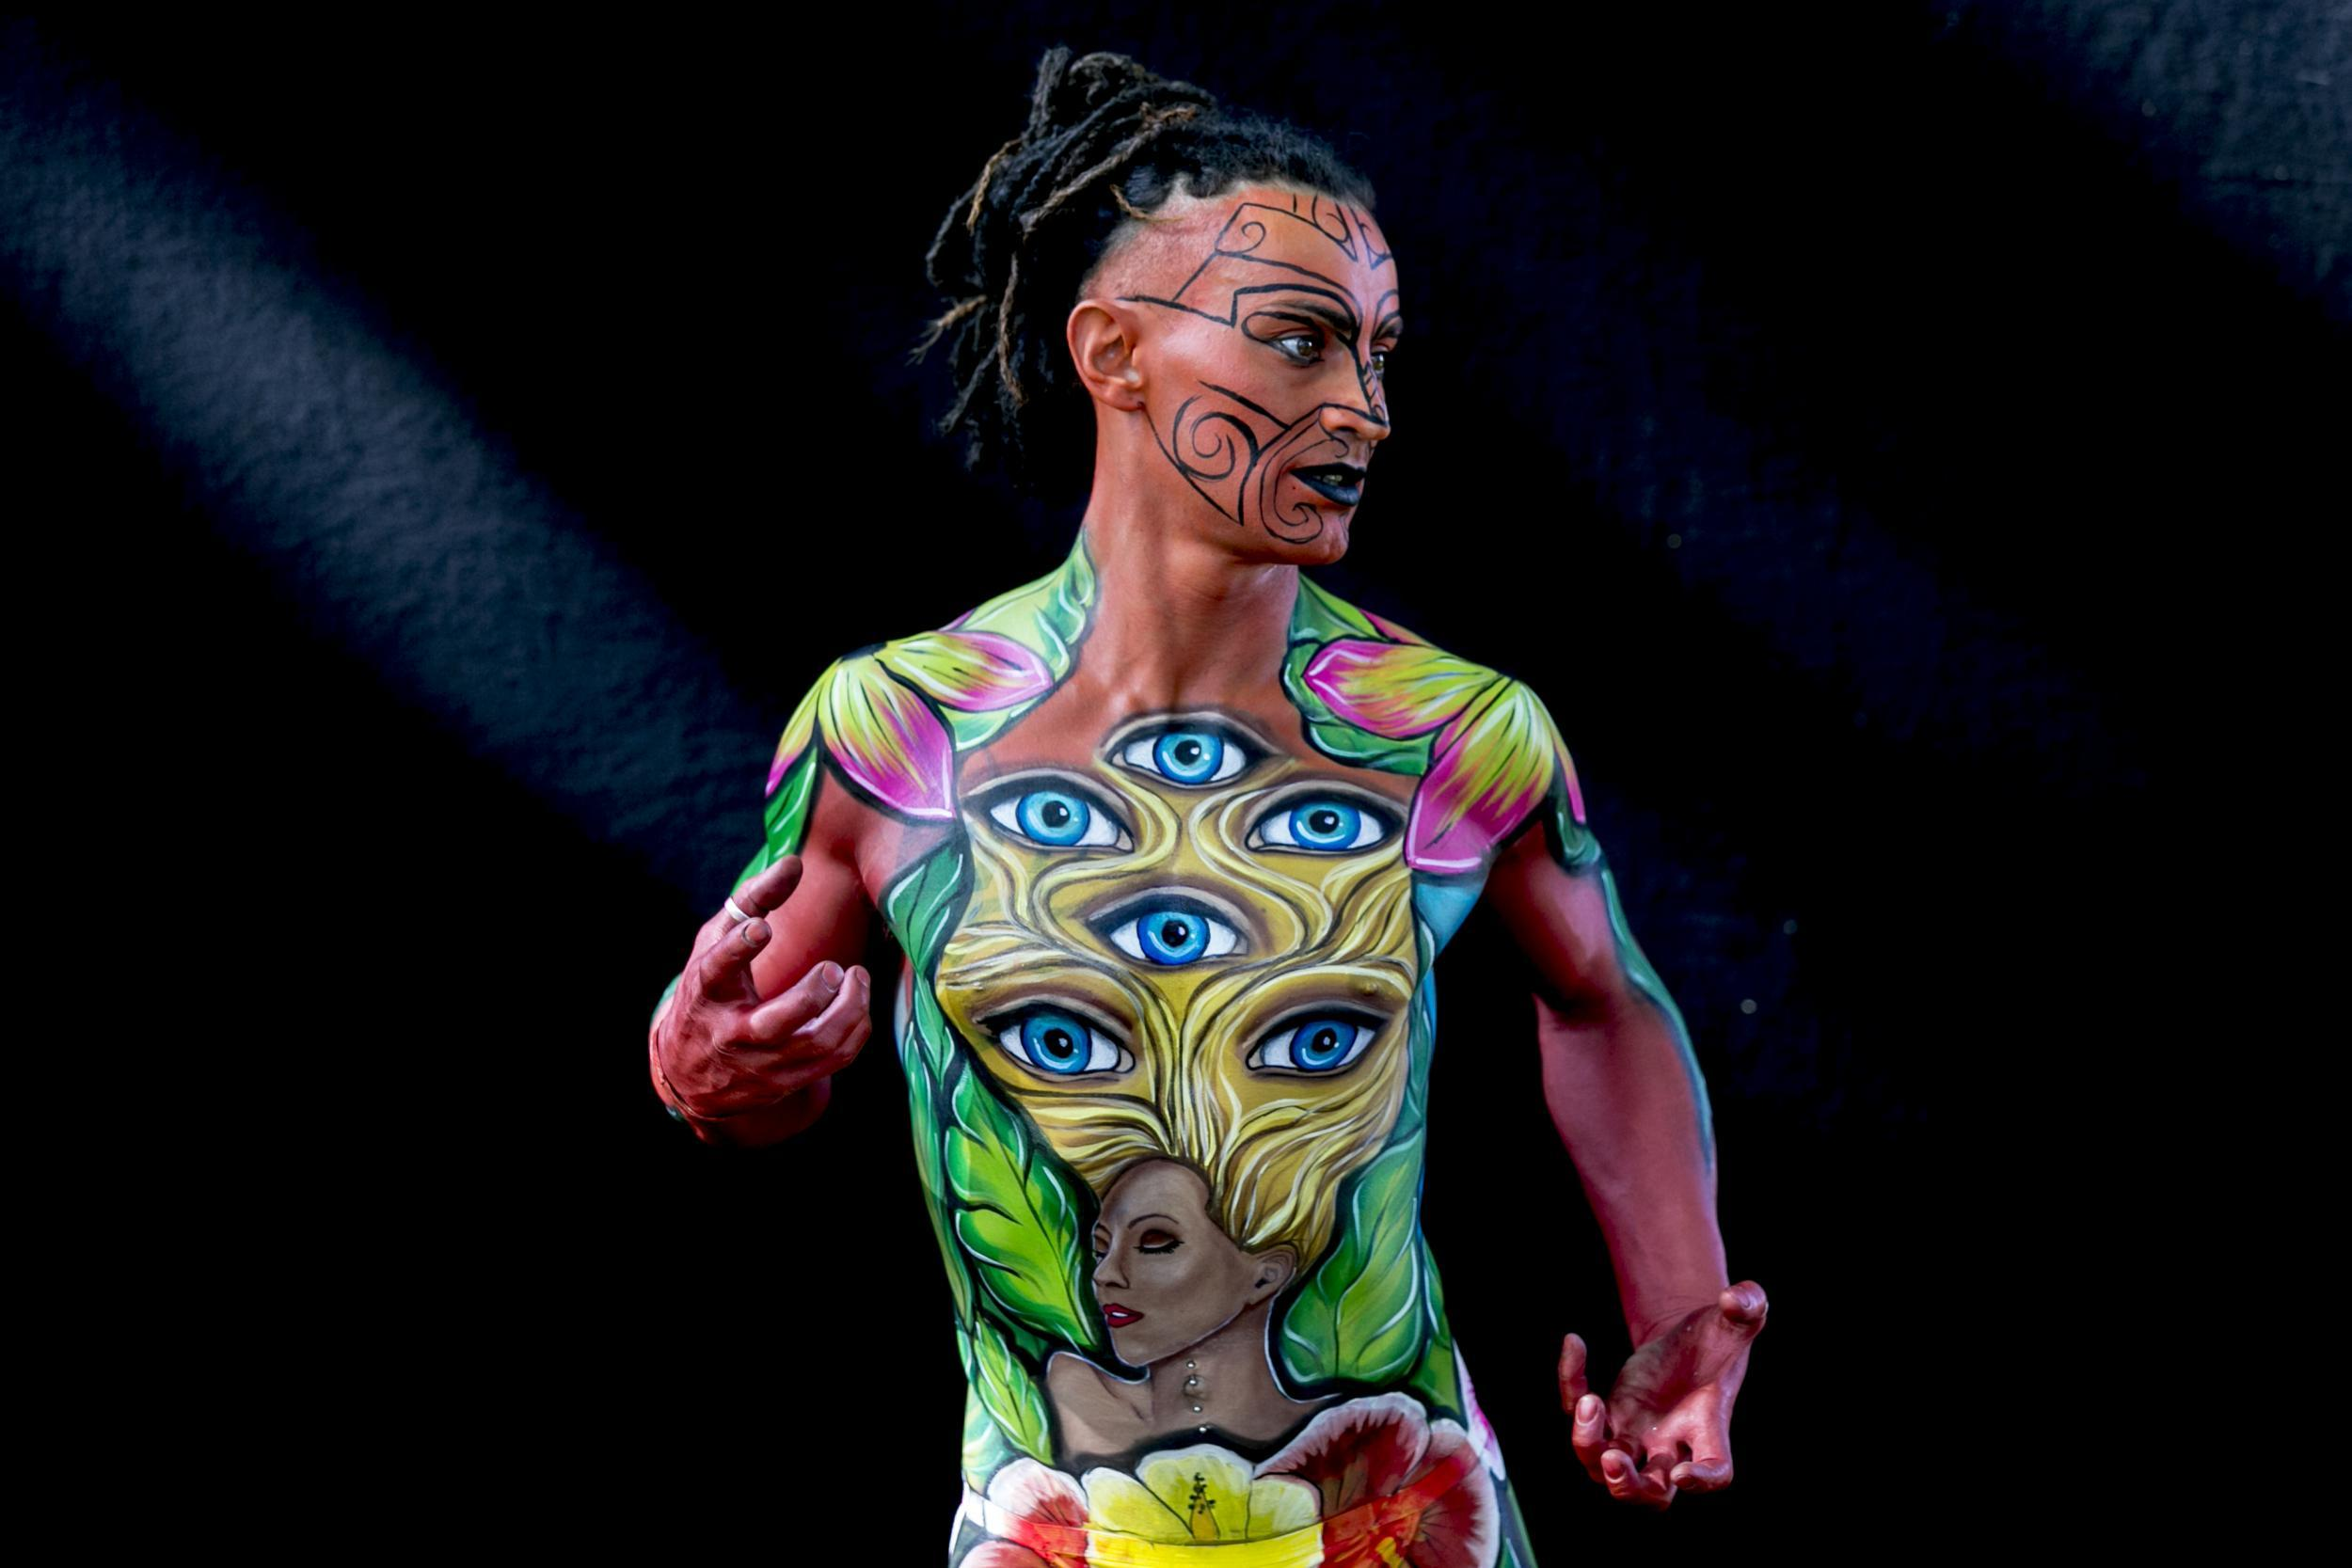 These Are The Best Images From The World Bodypainting Festival Indy100